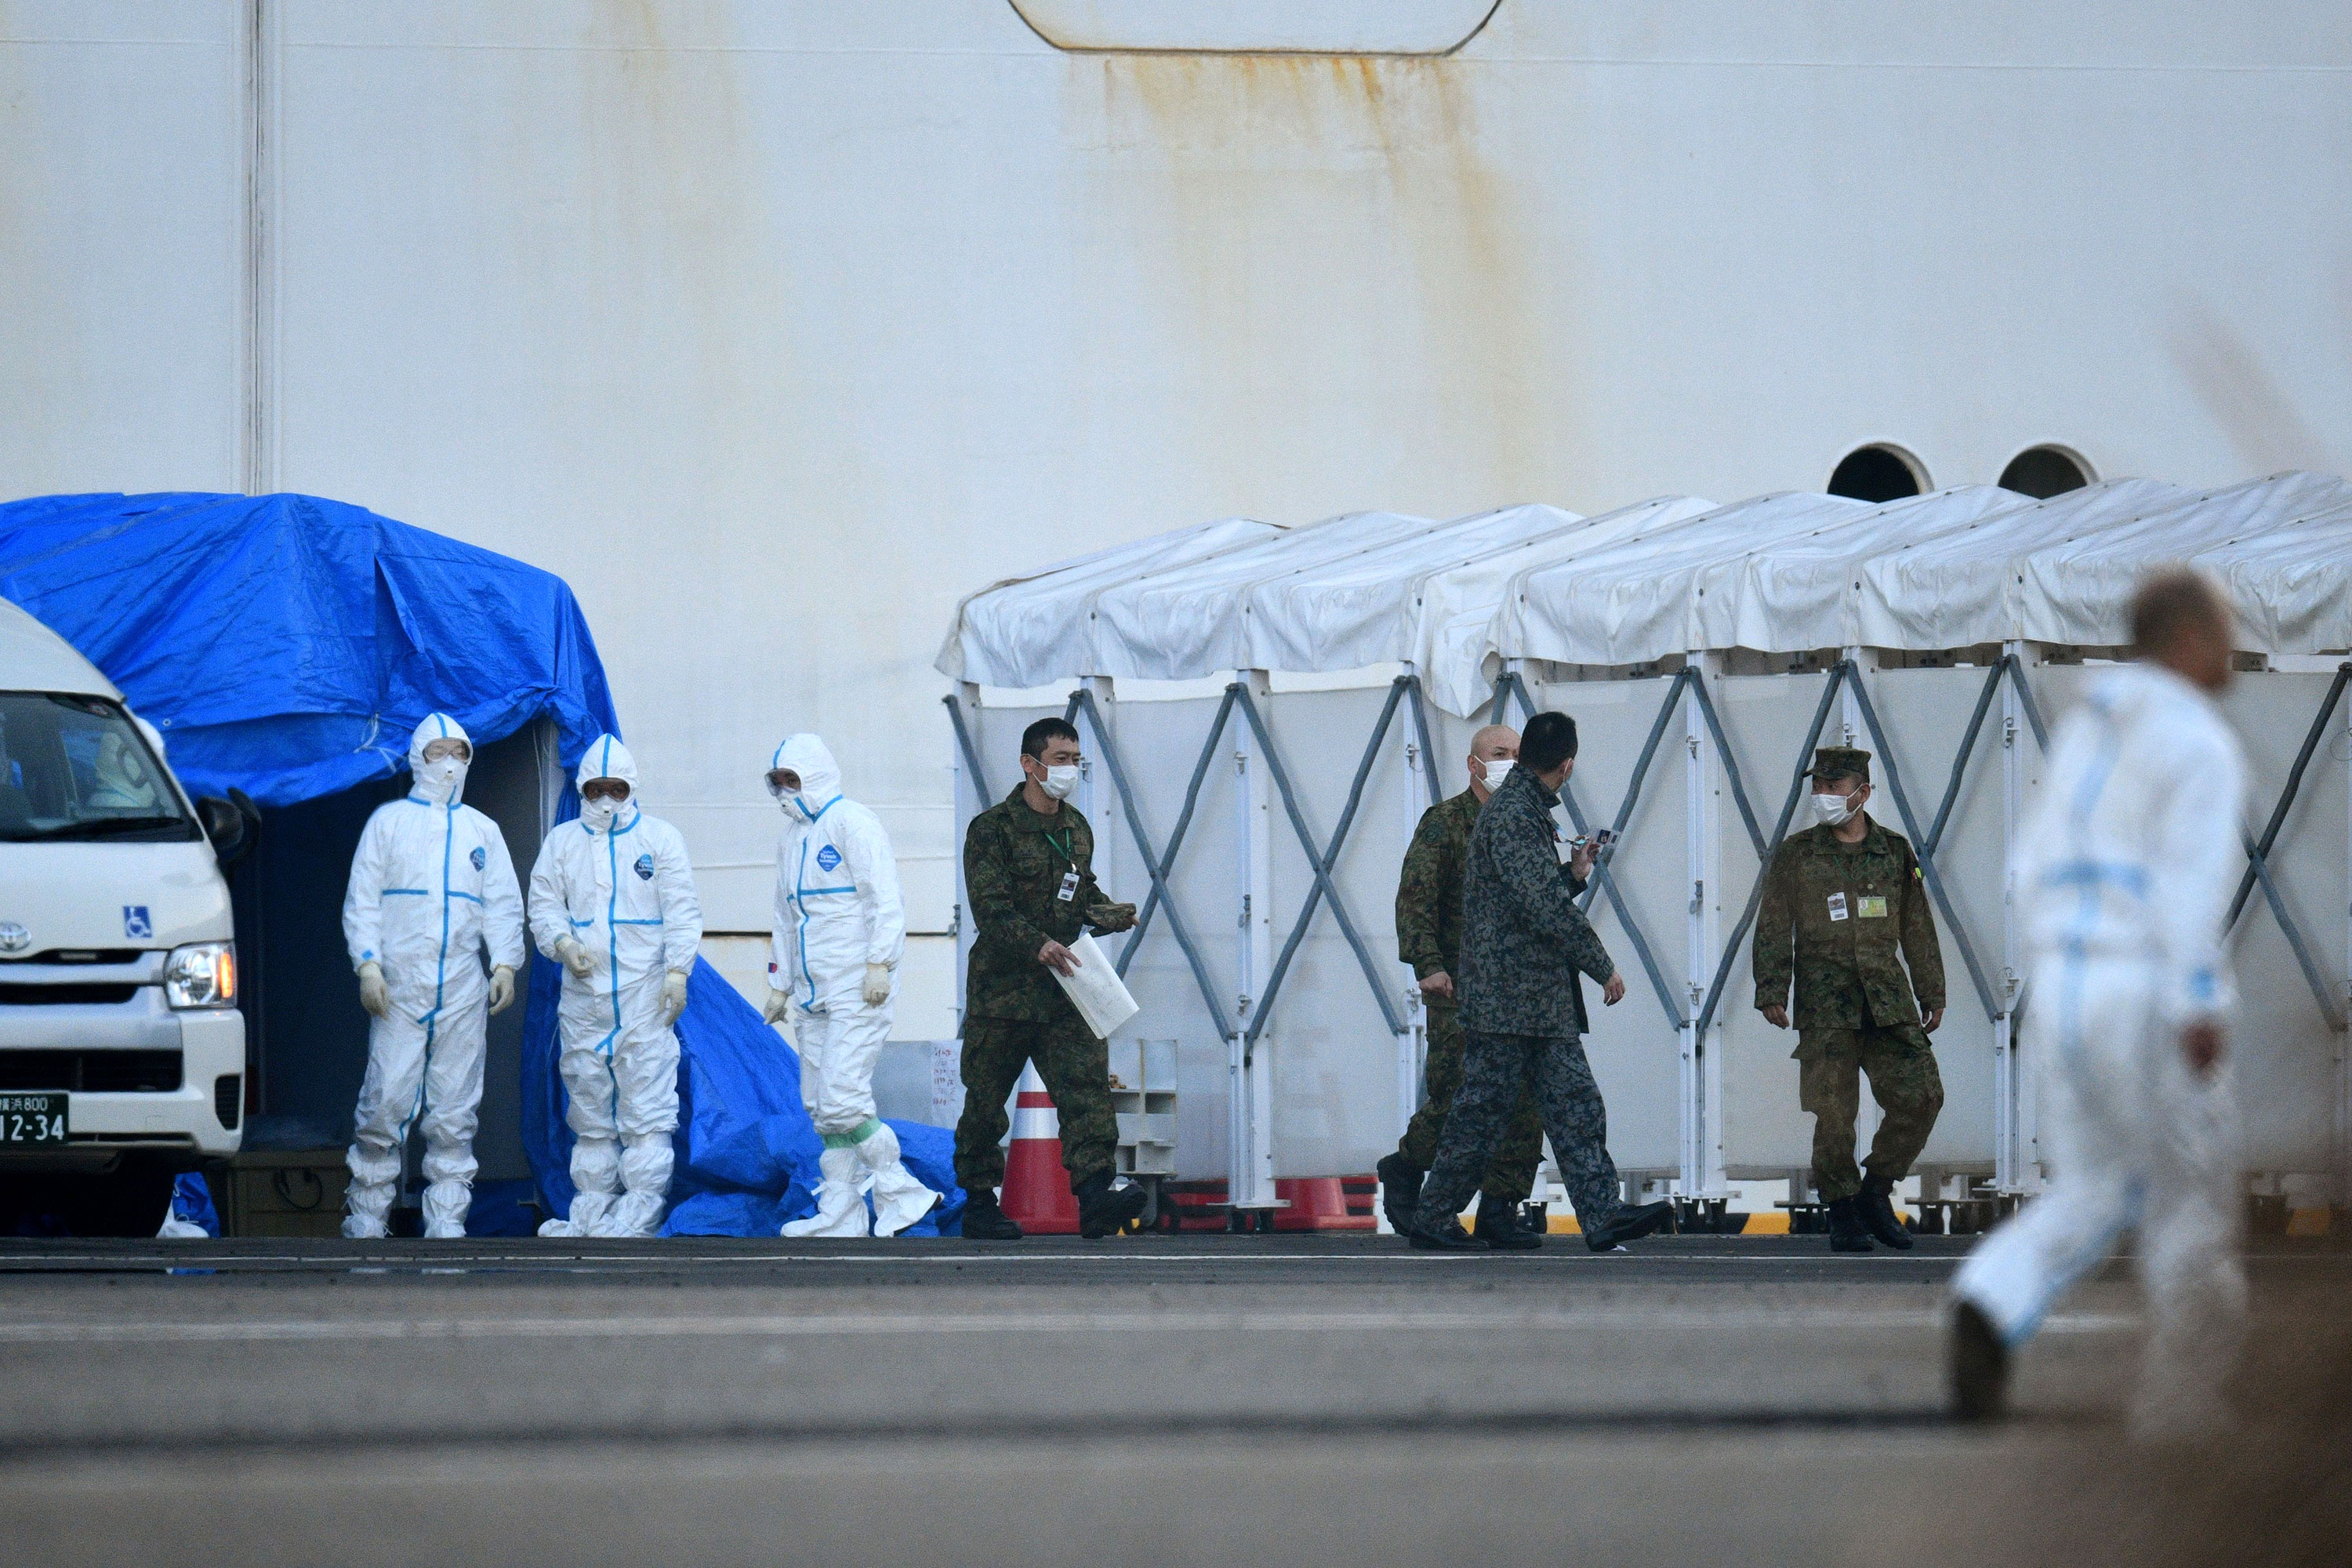 Medical staff and military personnel are seen near the quarantined Diamond Princess cruise ship on February 13.